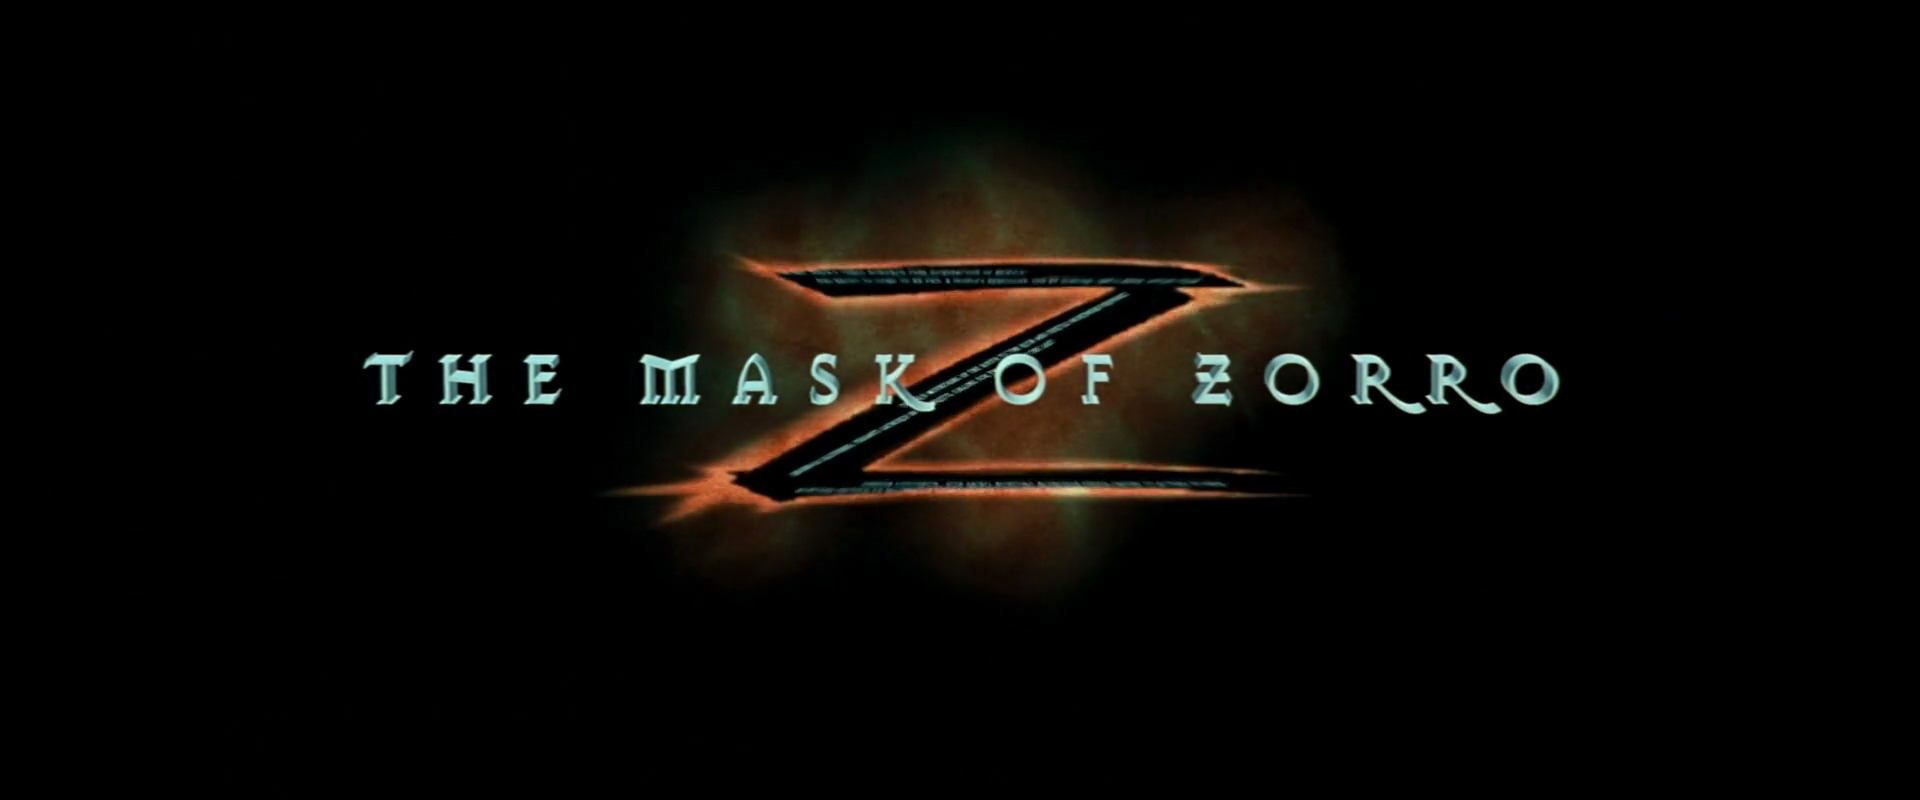 the mask of zorro full movie in hindi download 480p